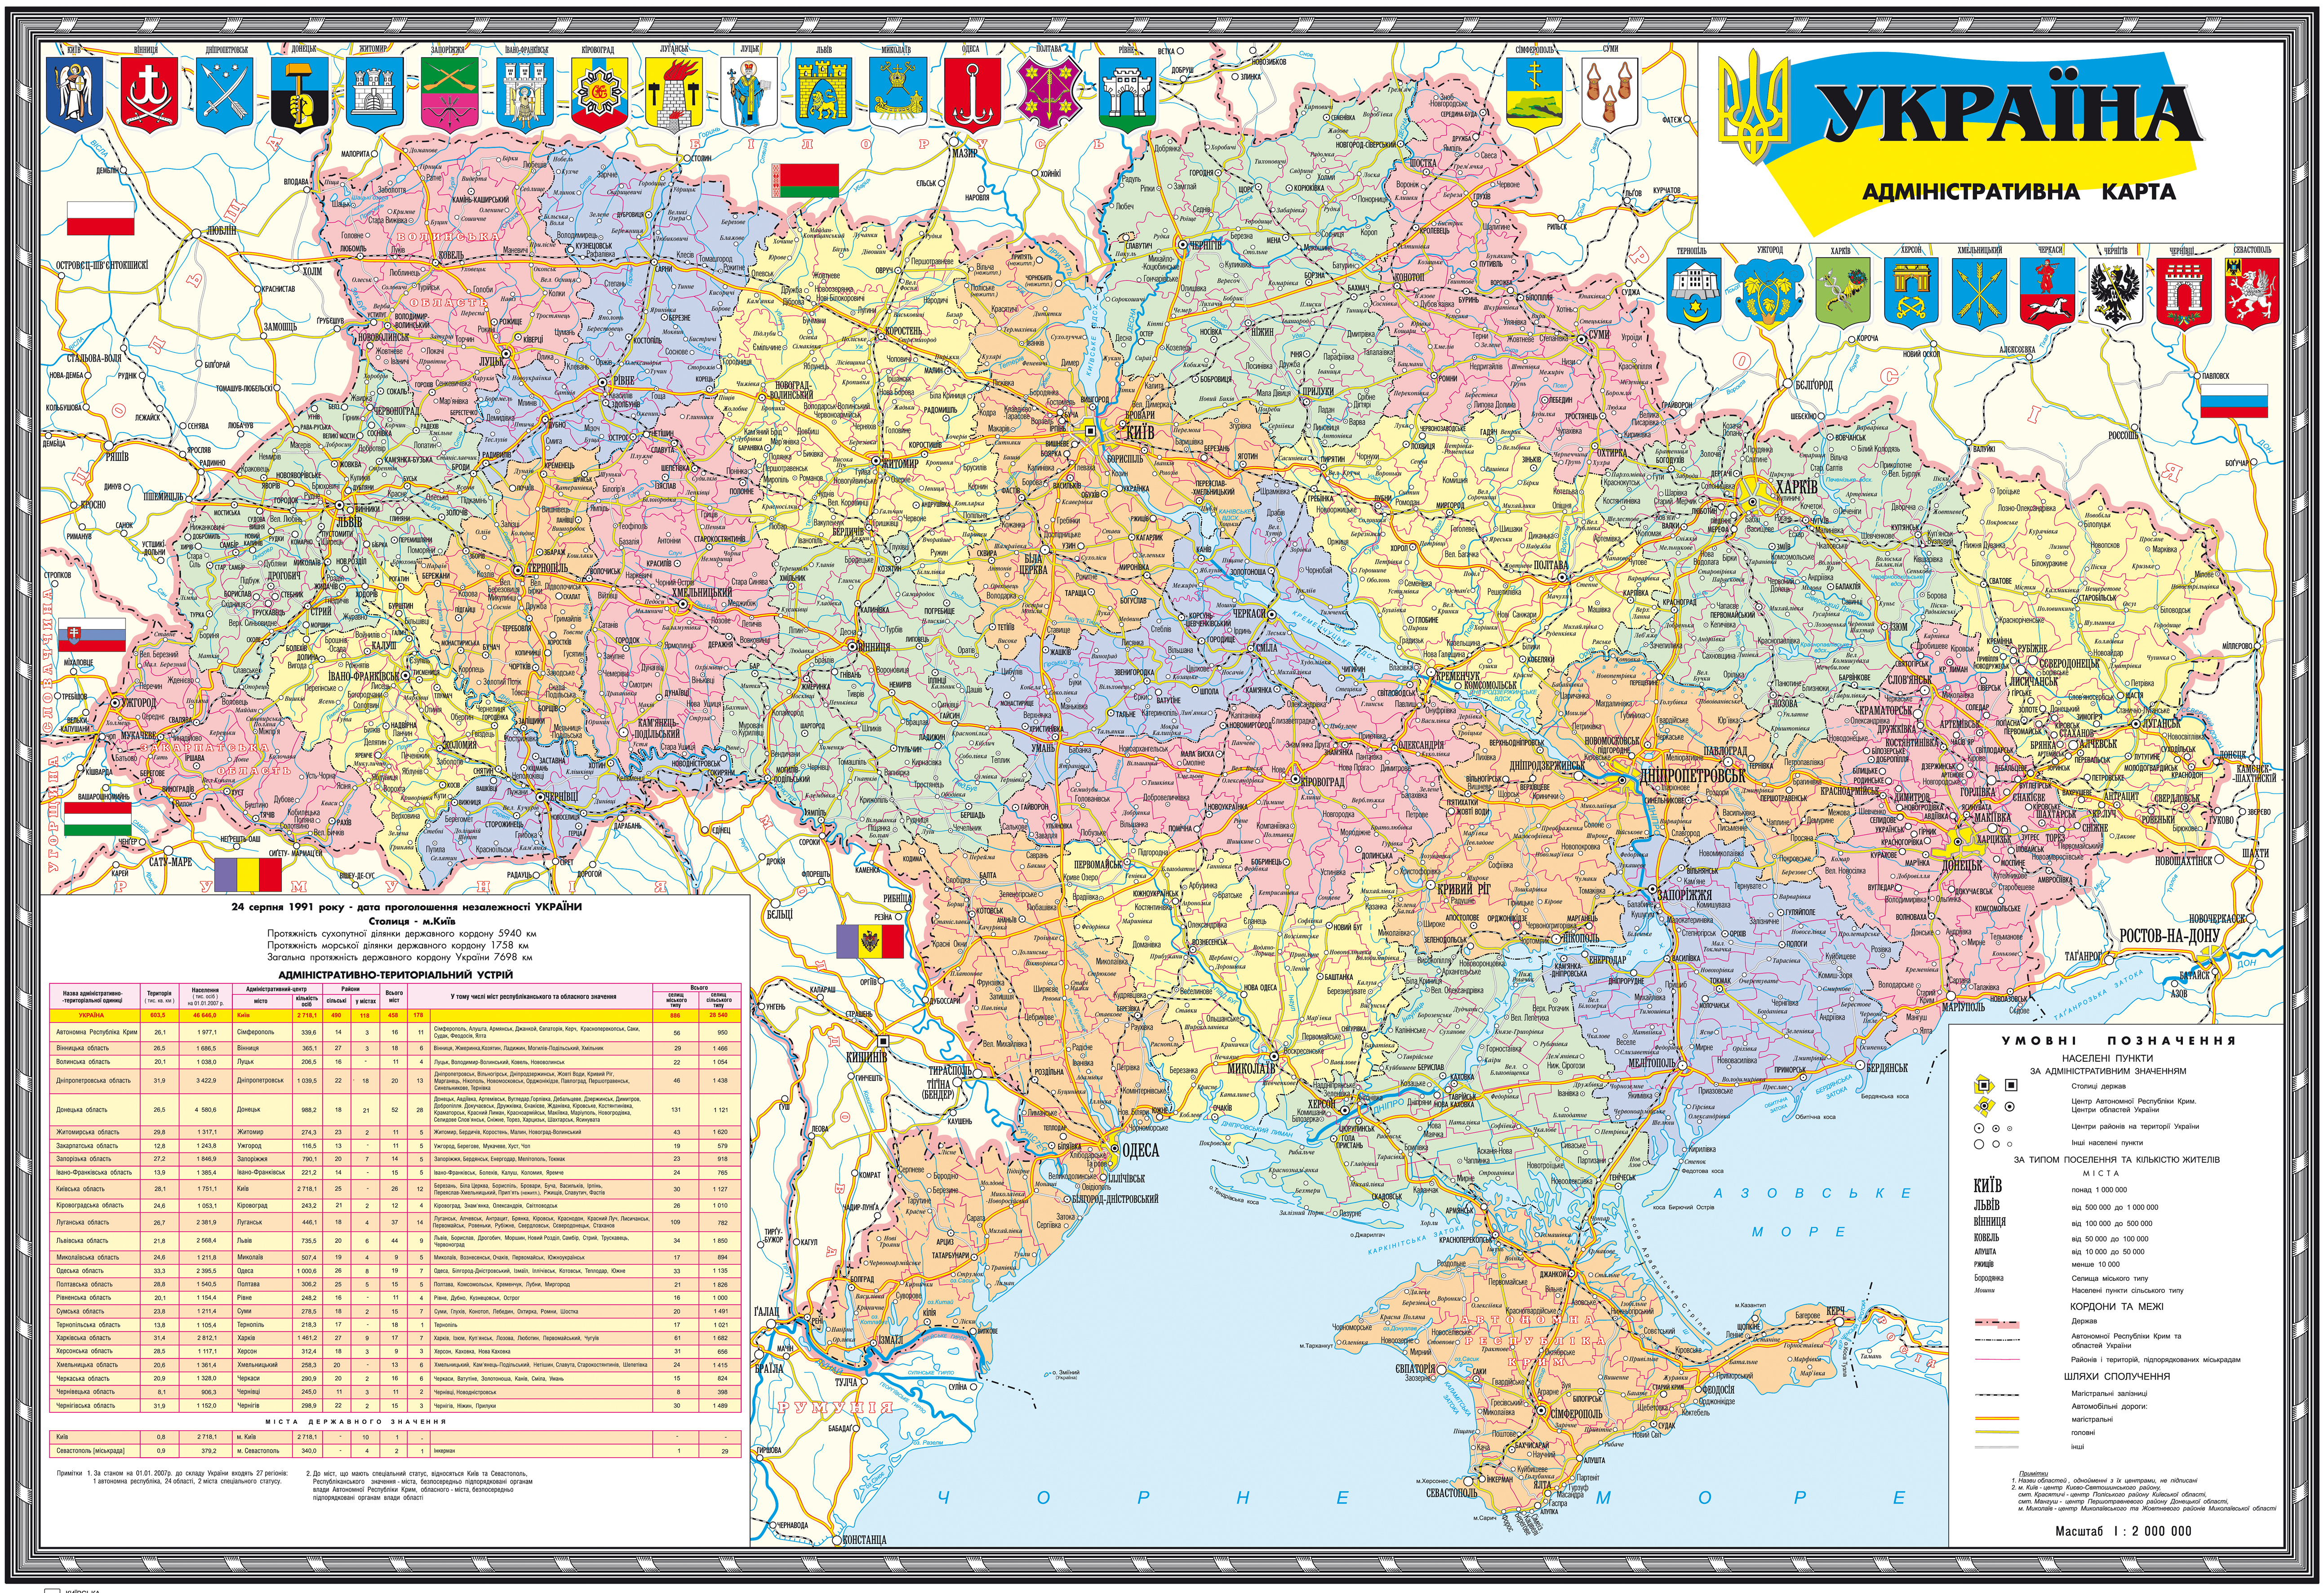 Large scaled detailed political and administrative map of ... on map layout, map distortion, grid reference, geographic information system, map of united states of america, map of florida, contour line, geographic coordinate system, linear scale, map of australia with cities, universal transverse mercator coordinate system, map of va, map grid, map distance, aerial photography, map legend, map symbols, compass rose, map key, map projection, map series, map area, map of texas, map skills, history of cartography, cartographic relief depiction, map tools, map boundaries, map features, spatial analysis, map region,